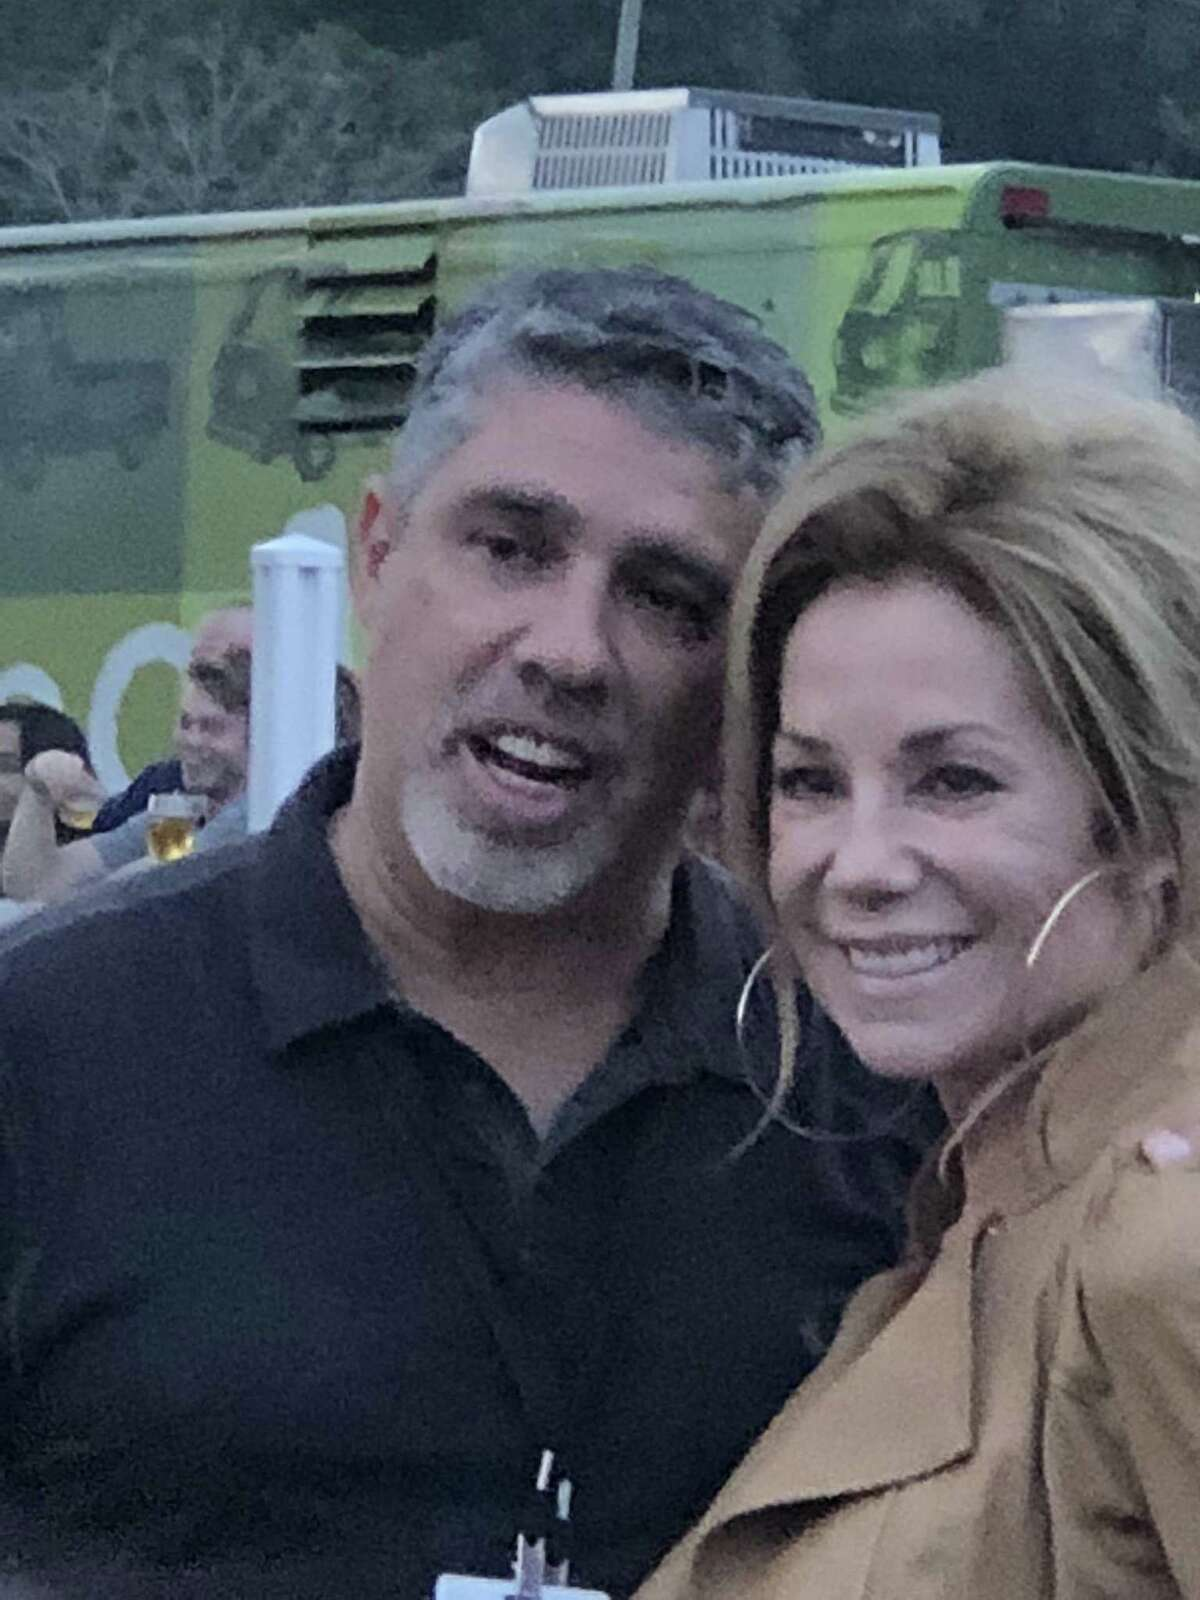 """""""Howard Stern Show"""" producer Gary Dell'Abate and """"Today"""" show co-host Kathie Lee Gifford poset at the Greenwich Wine + Food Festival last weekend in Greenwich."""